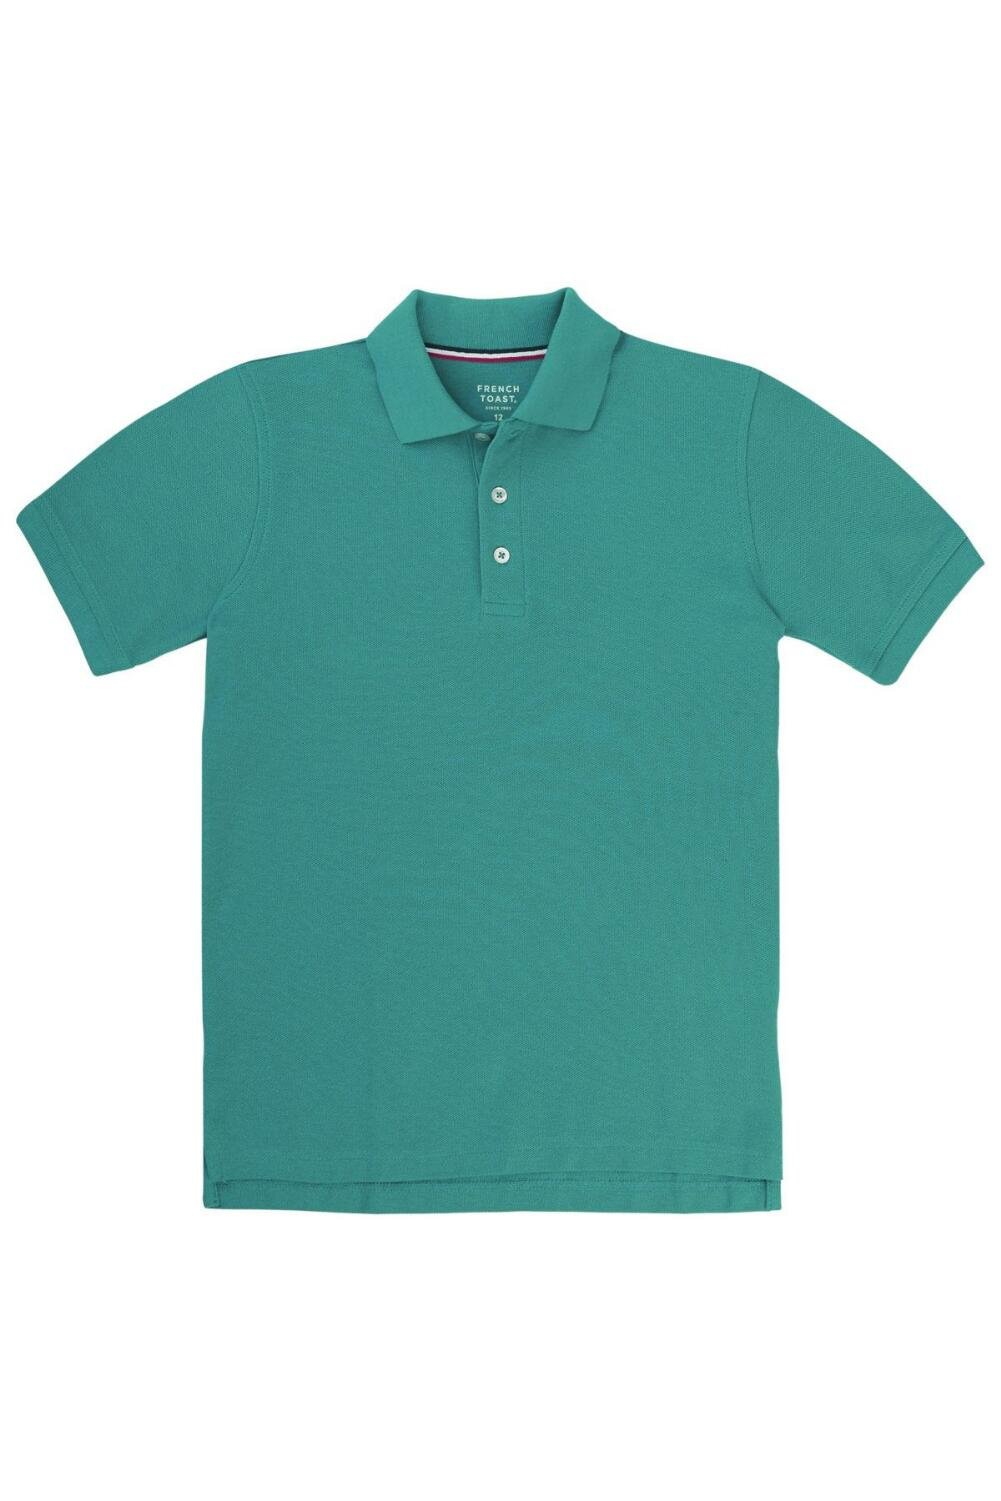 French Toast Little Boys' Short Sleeve Pique Polo, Teal, 4 by French Toast